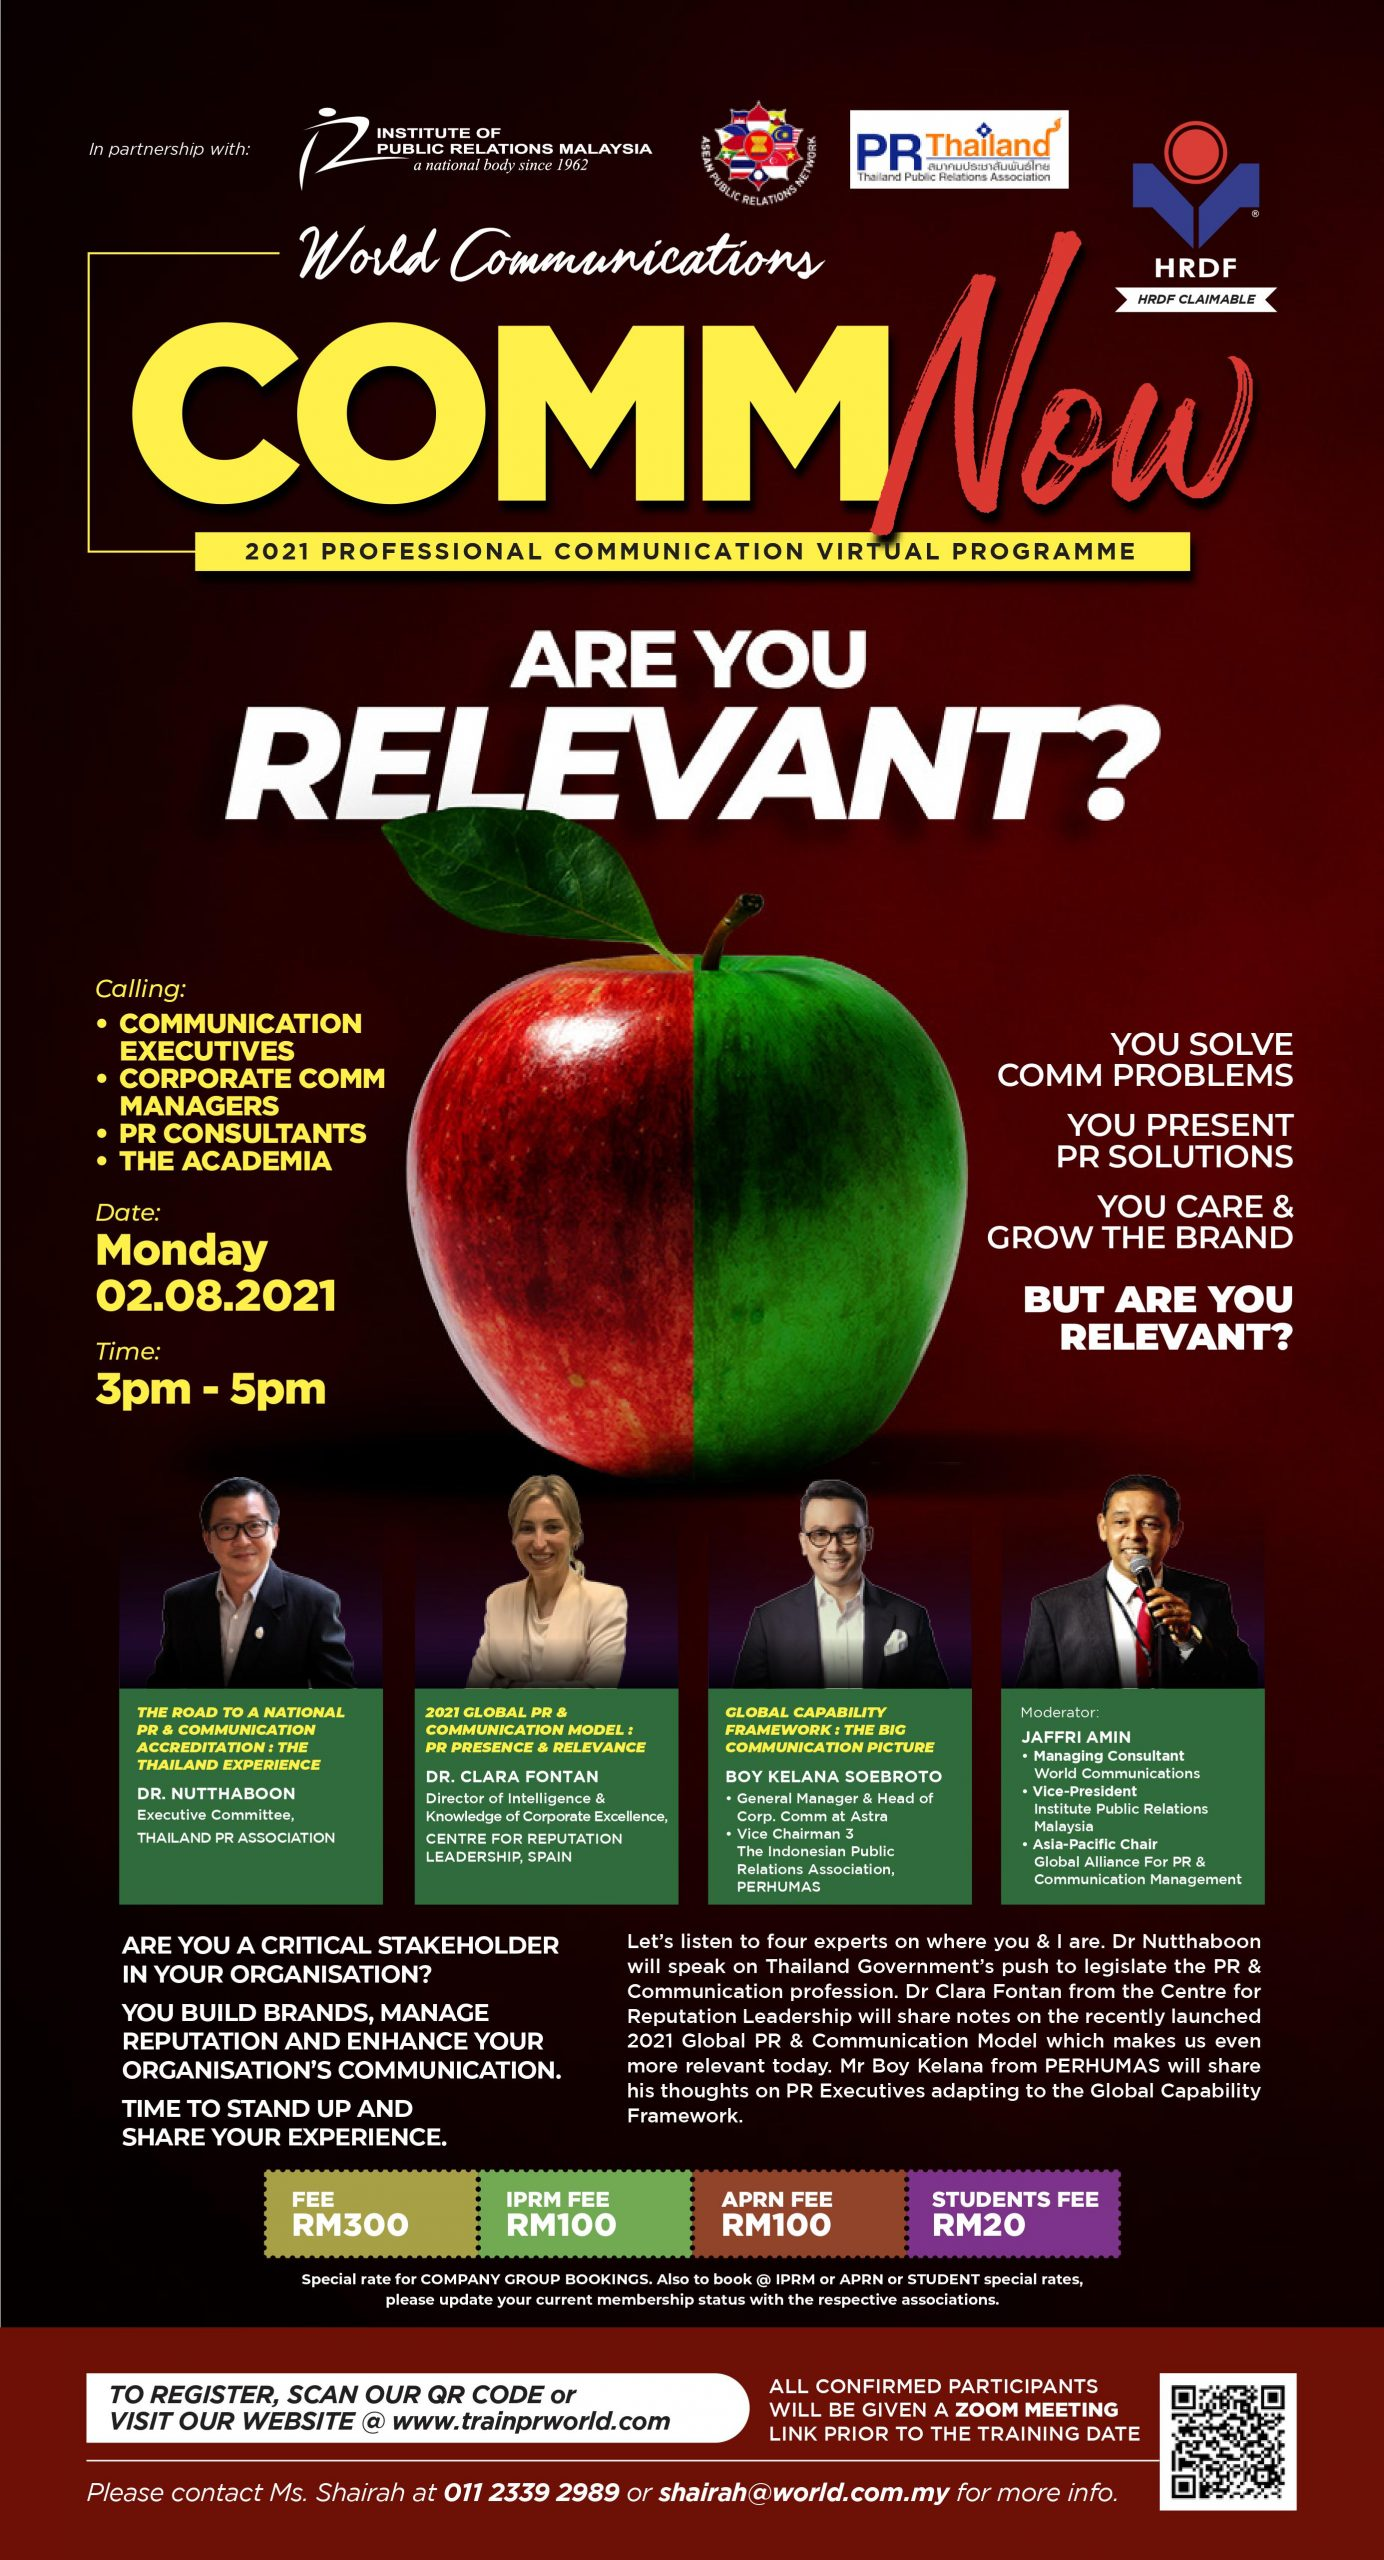 [Upcoming Event] World Communication Comm NOW Talk: Are You Relevant?